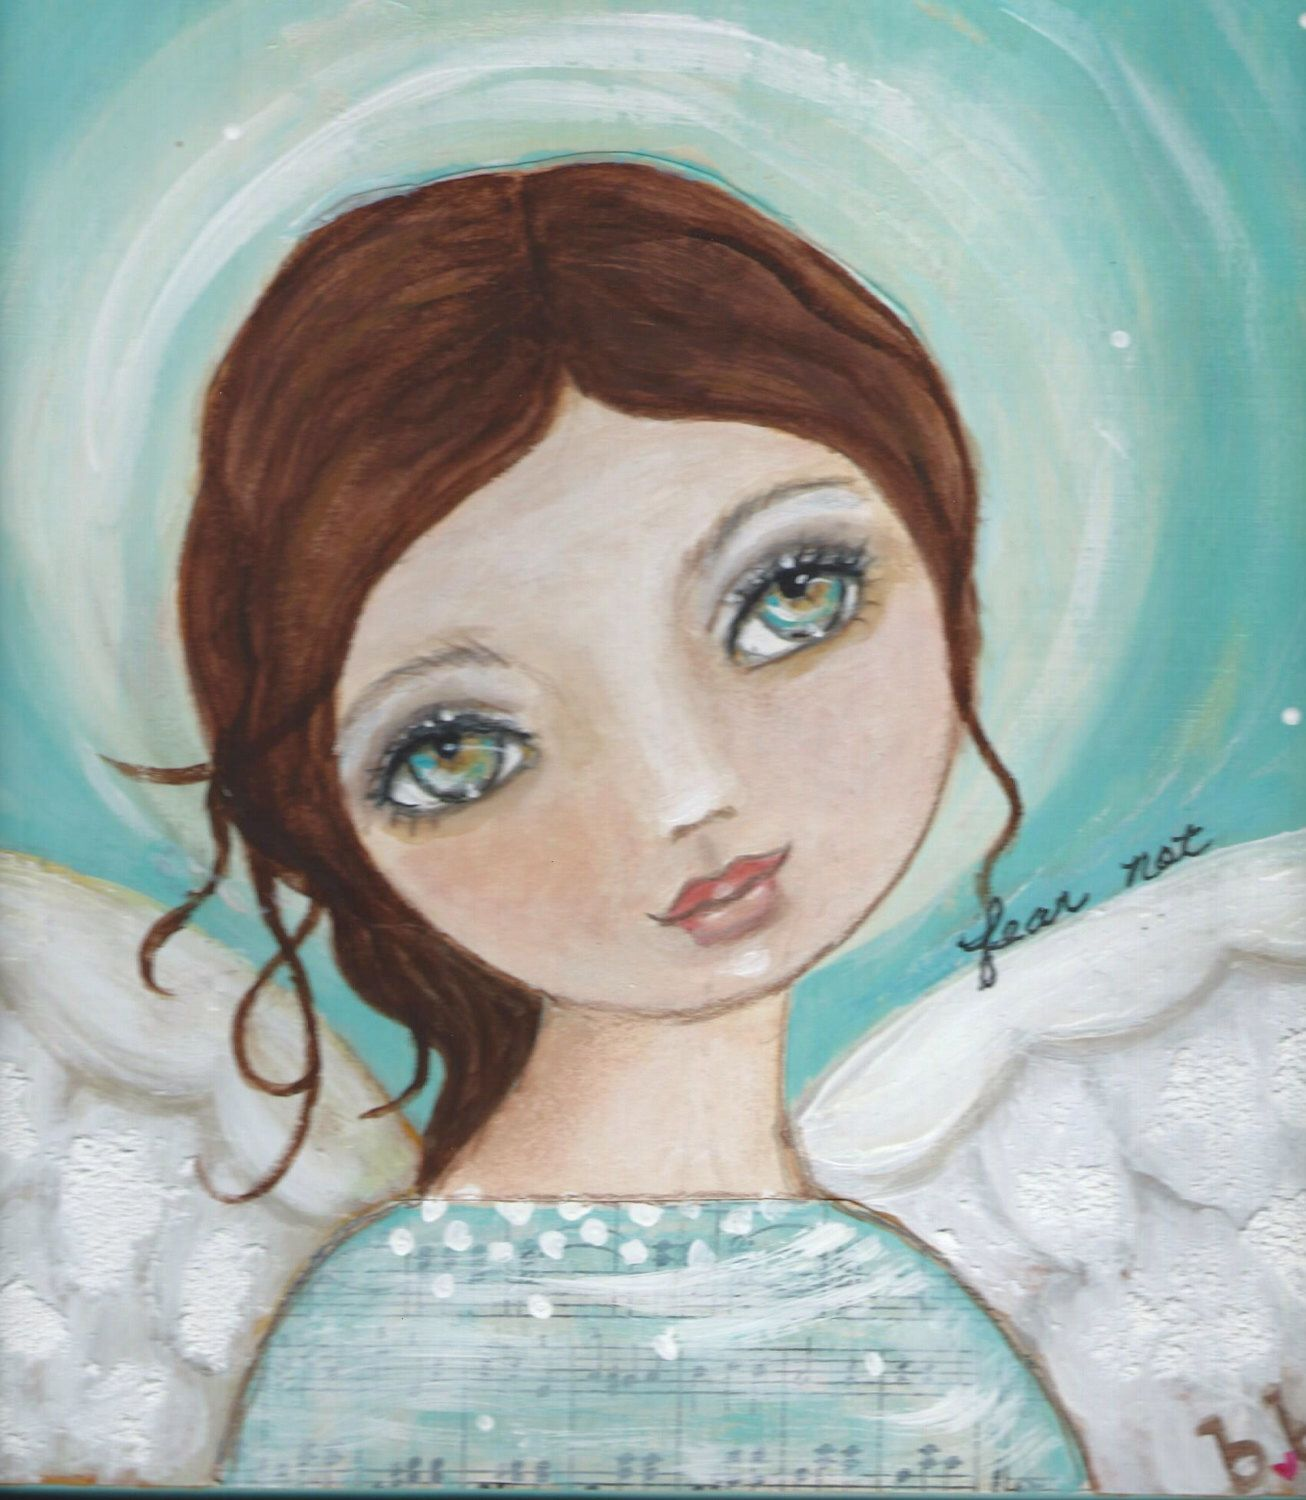 Fear Not Mixed media original painting Angel by bb by bonnesinger on Etsy https://www.etsy.com/listing/219267465/fear-not-mixed-media-original-painting